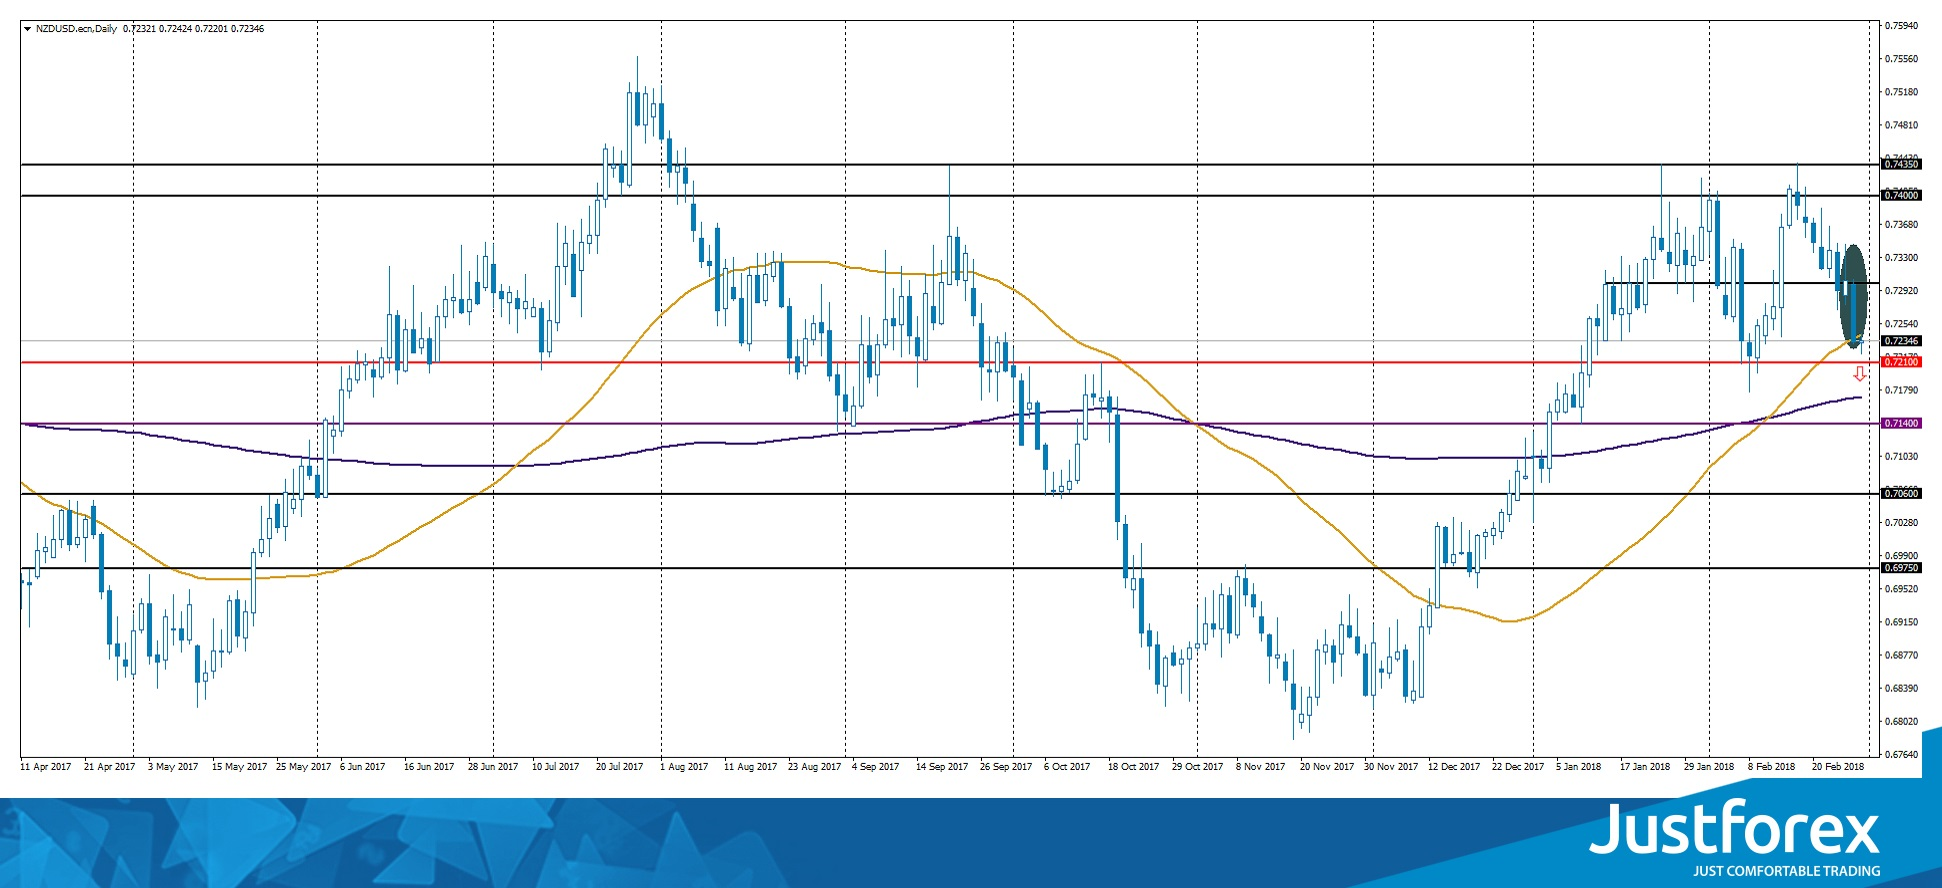 Pin Bar and Bearish Engulfing on NZD/USD